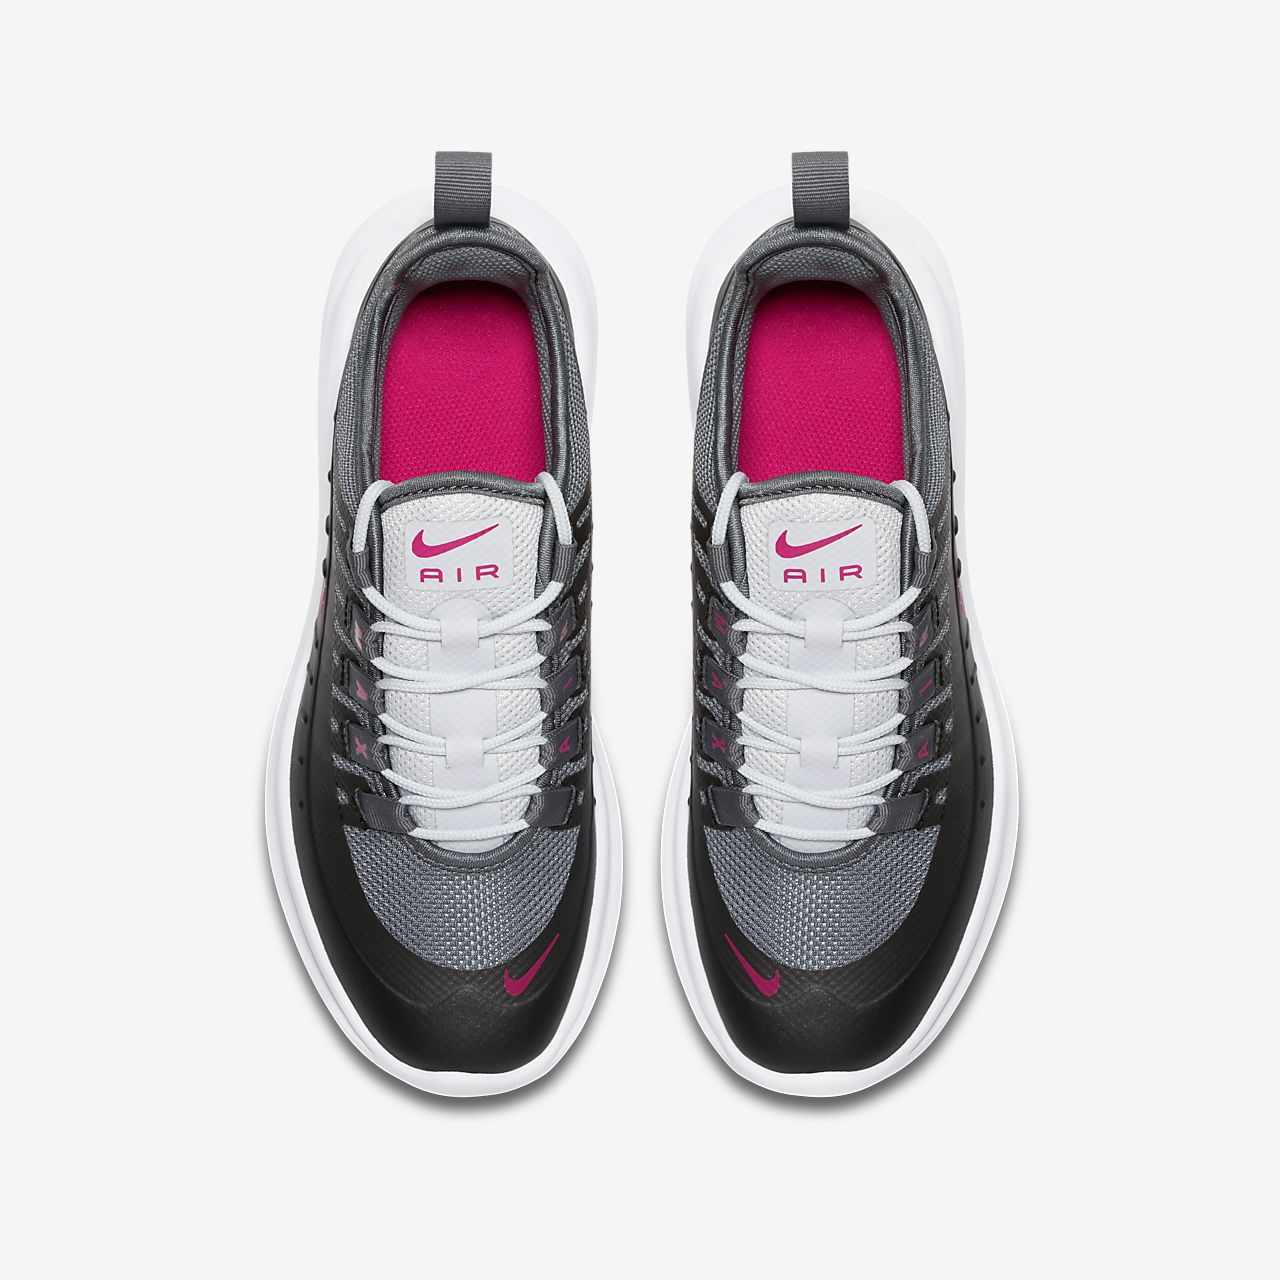 Fille Chaussures Max Grises Remonte Air Axis Nike TZqZRX1